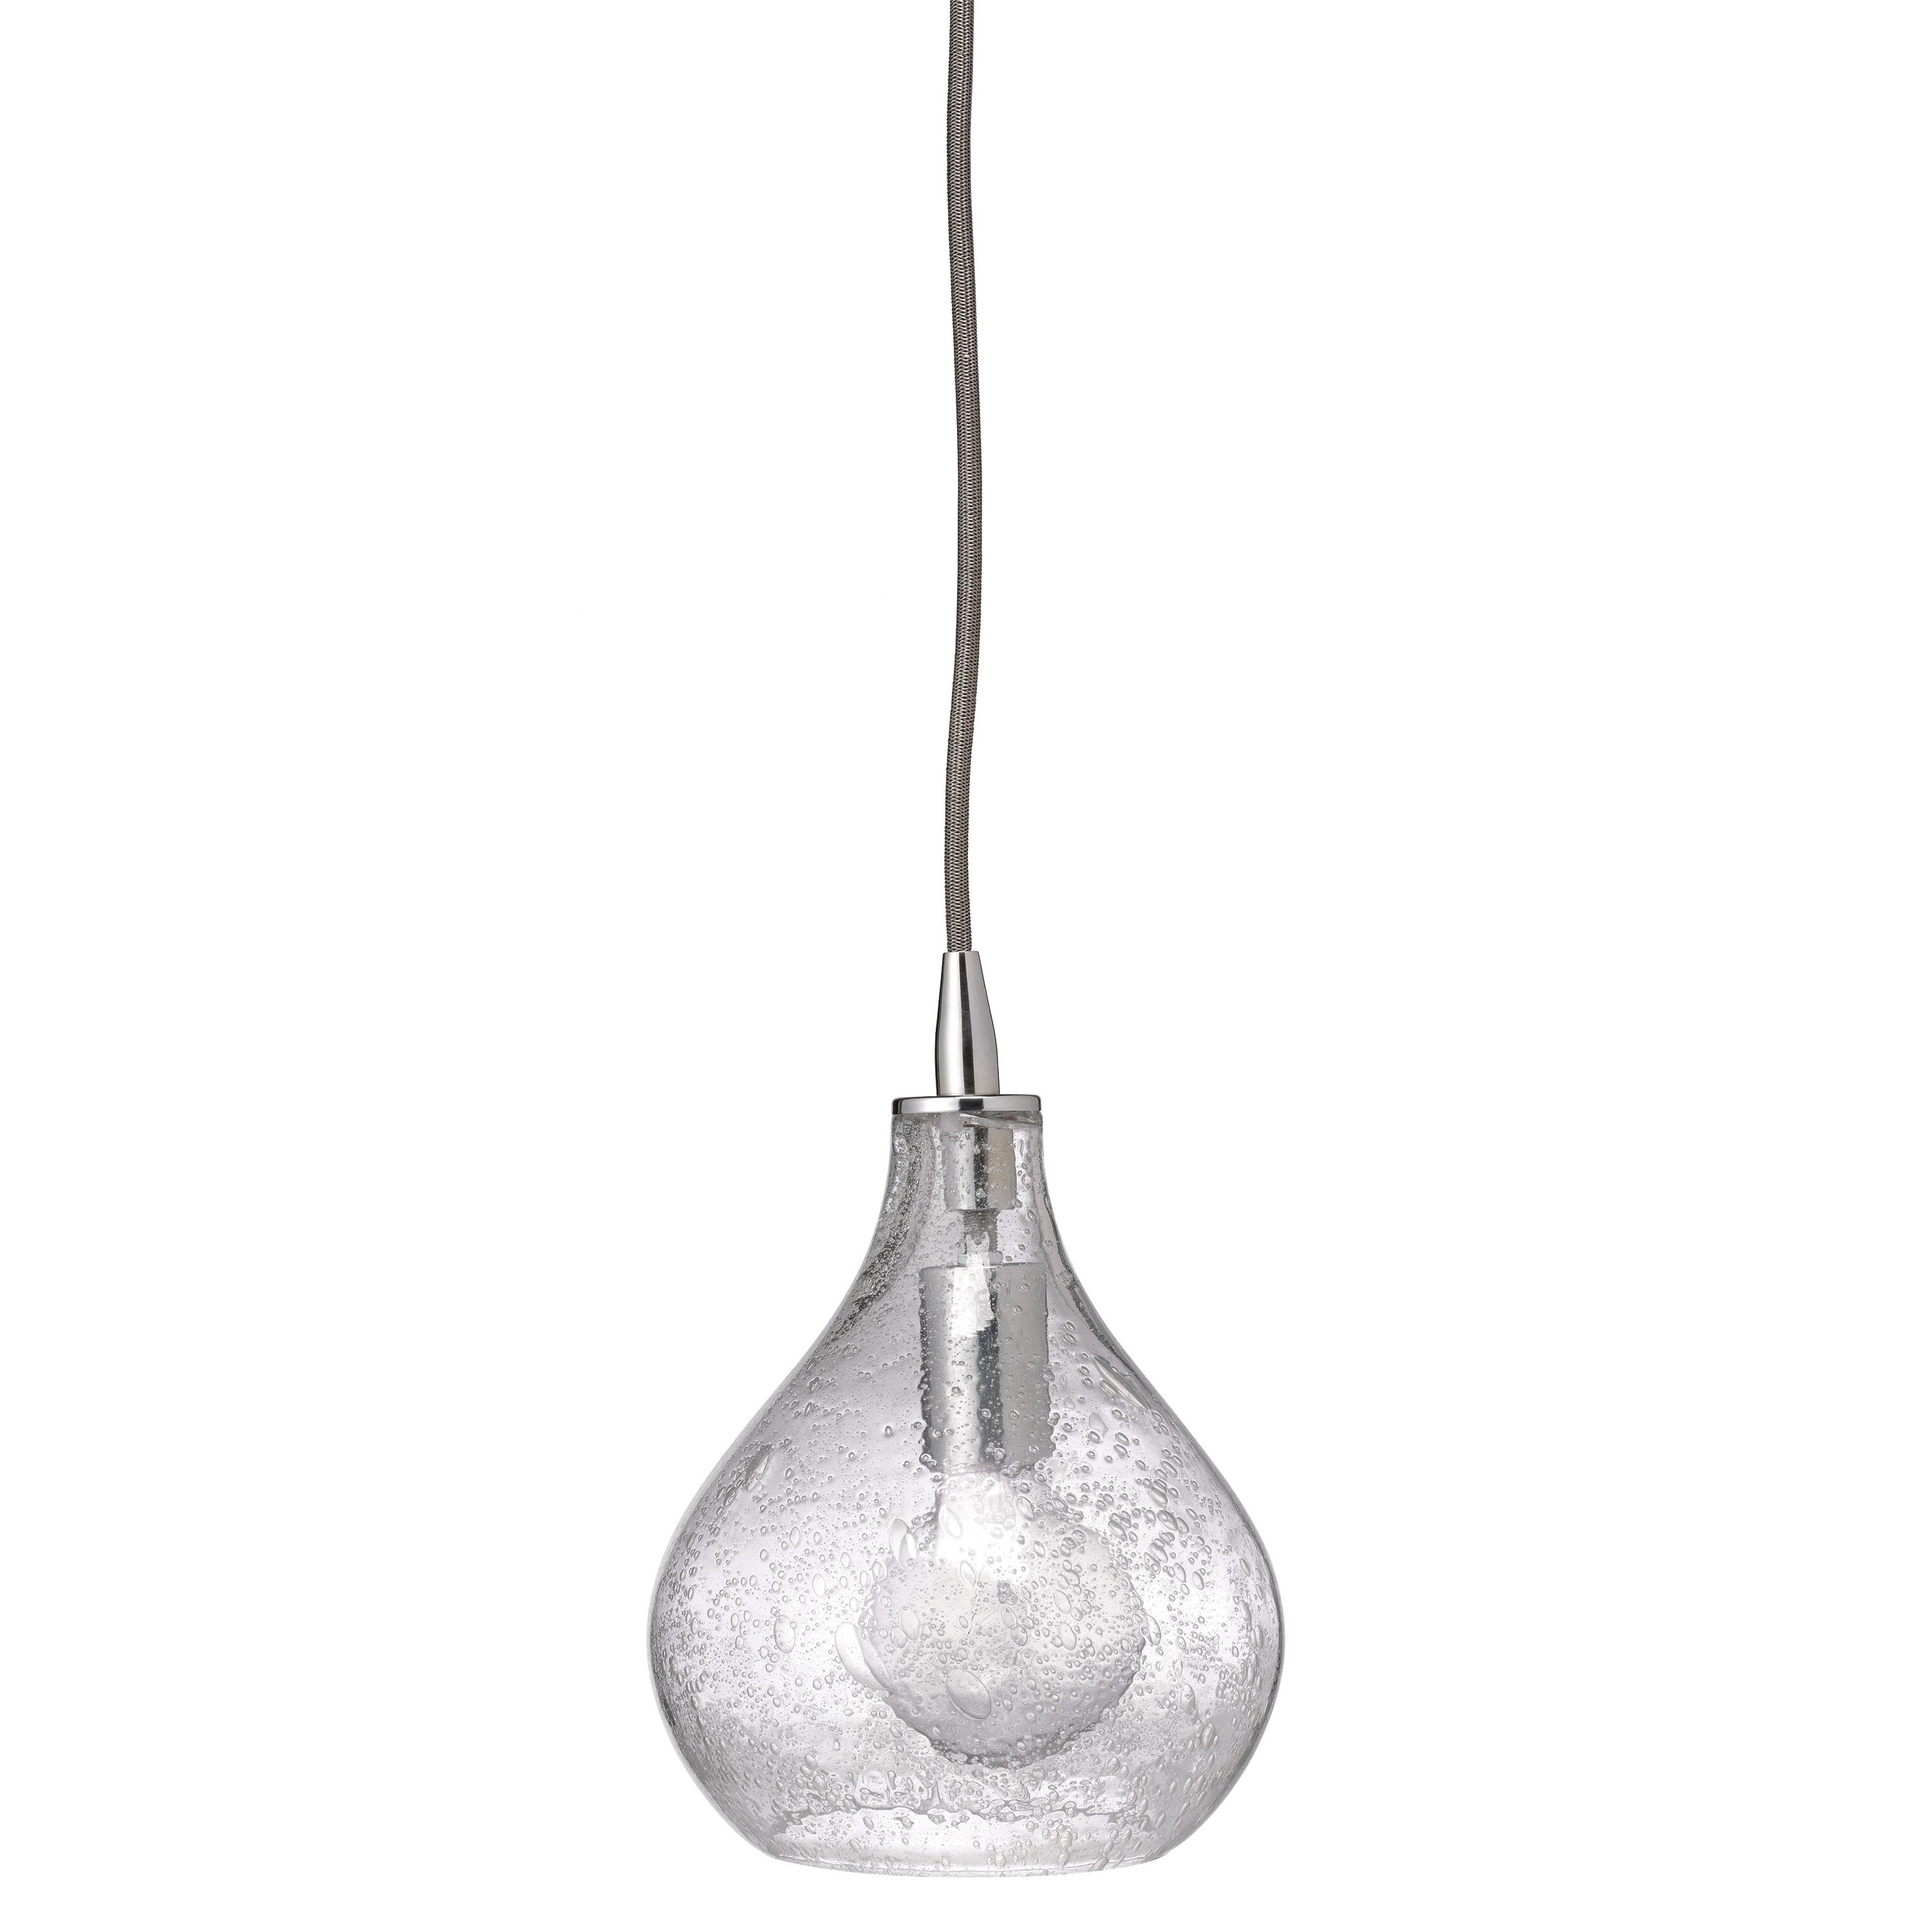 Jamie young company curved 1 light mini pendant reviews for Jamie young lighting pendant